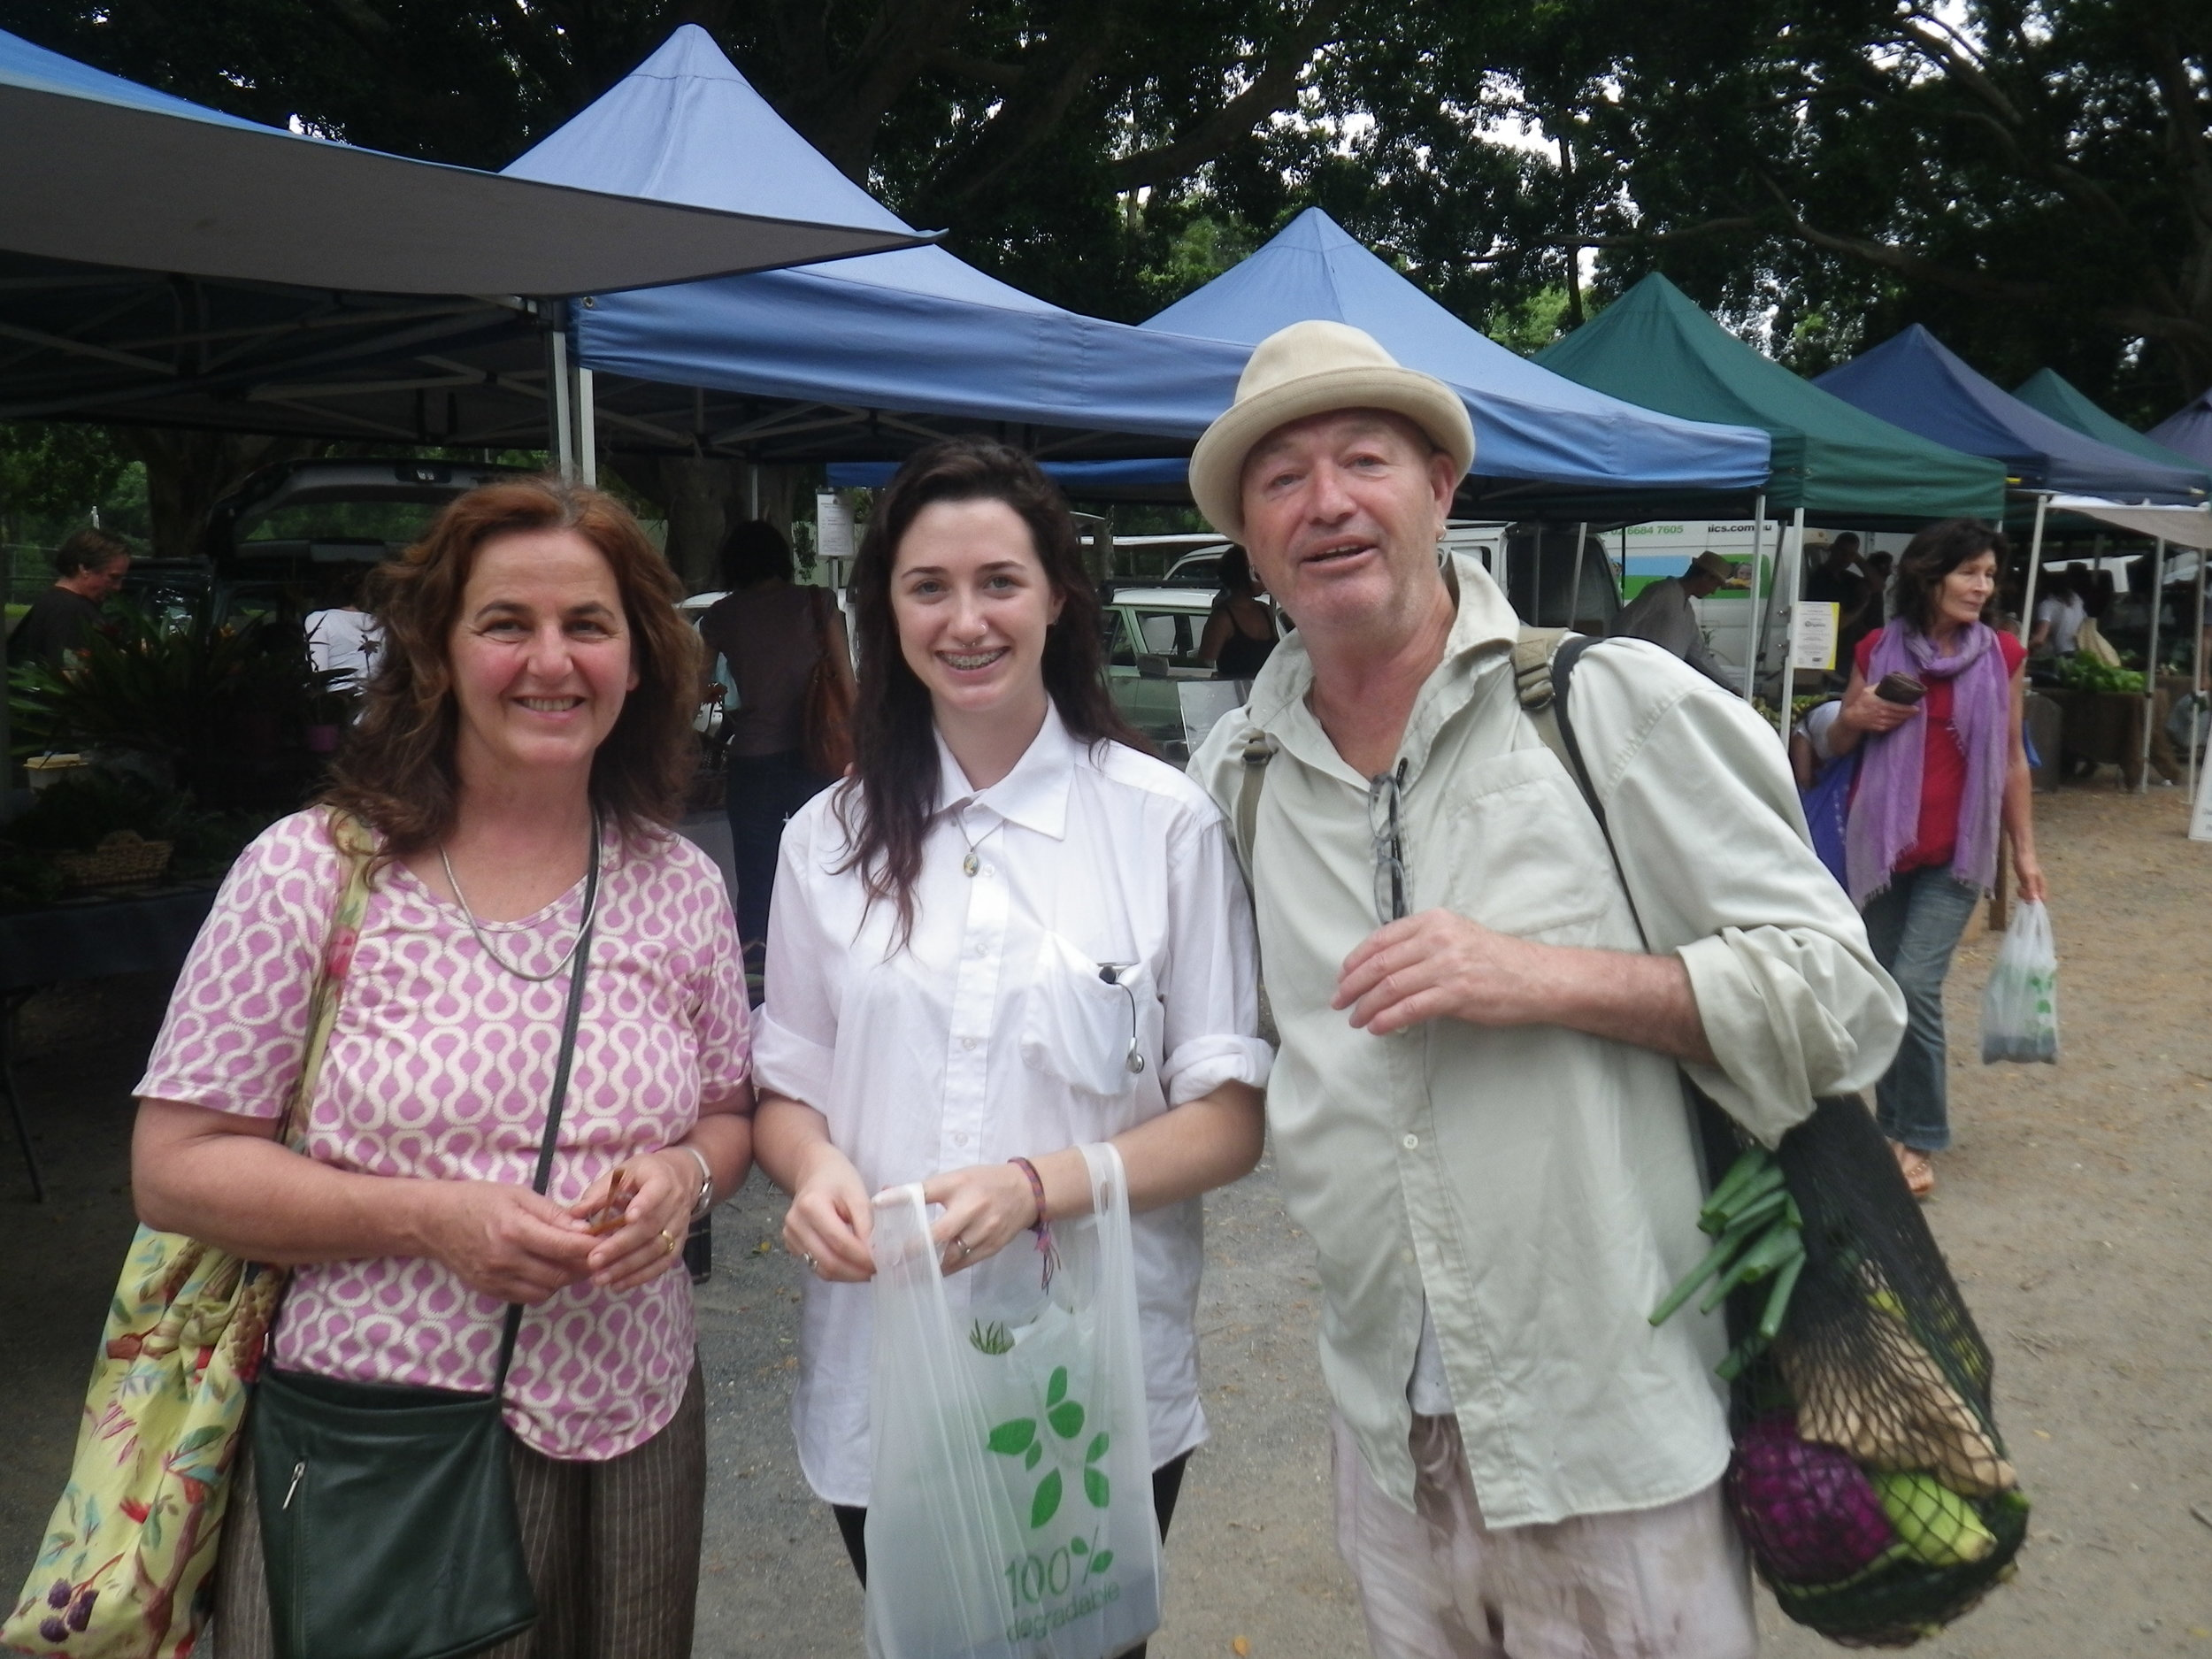 Kate Veitch, Lily and Vince Lovegrove, at the Mullumbimby Farmers Market on 11/11/11